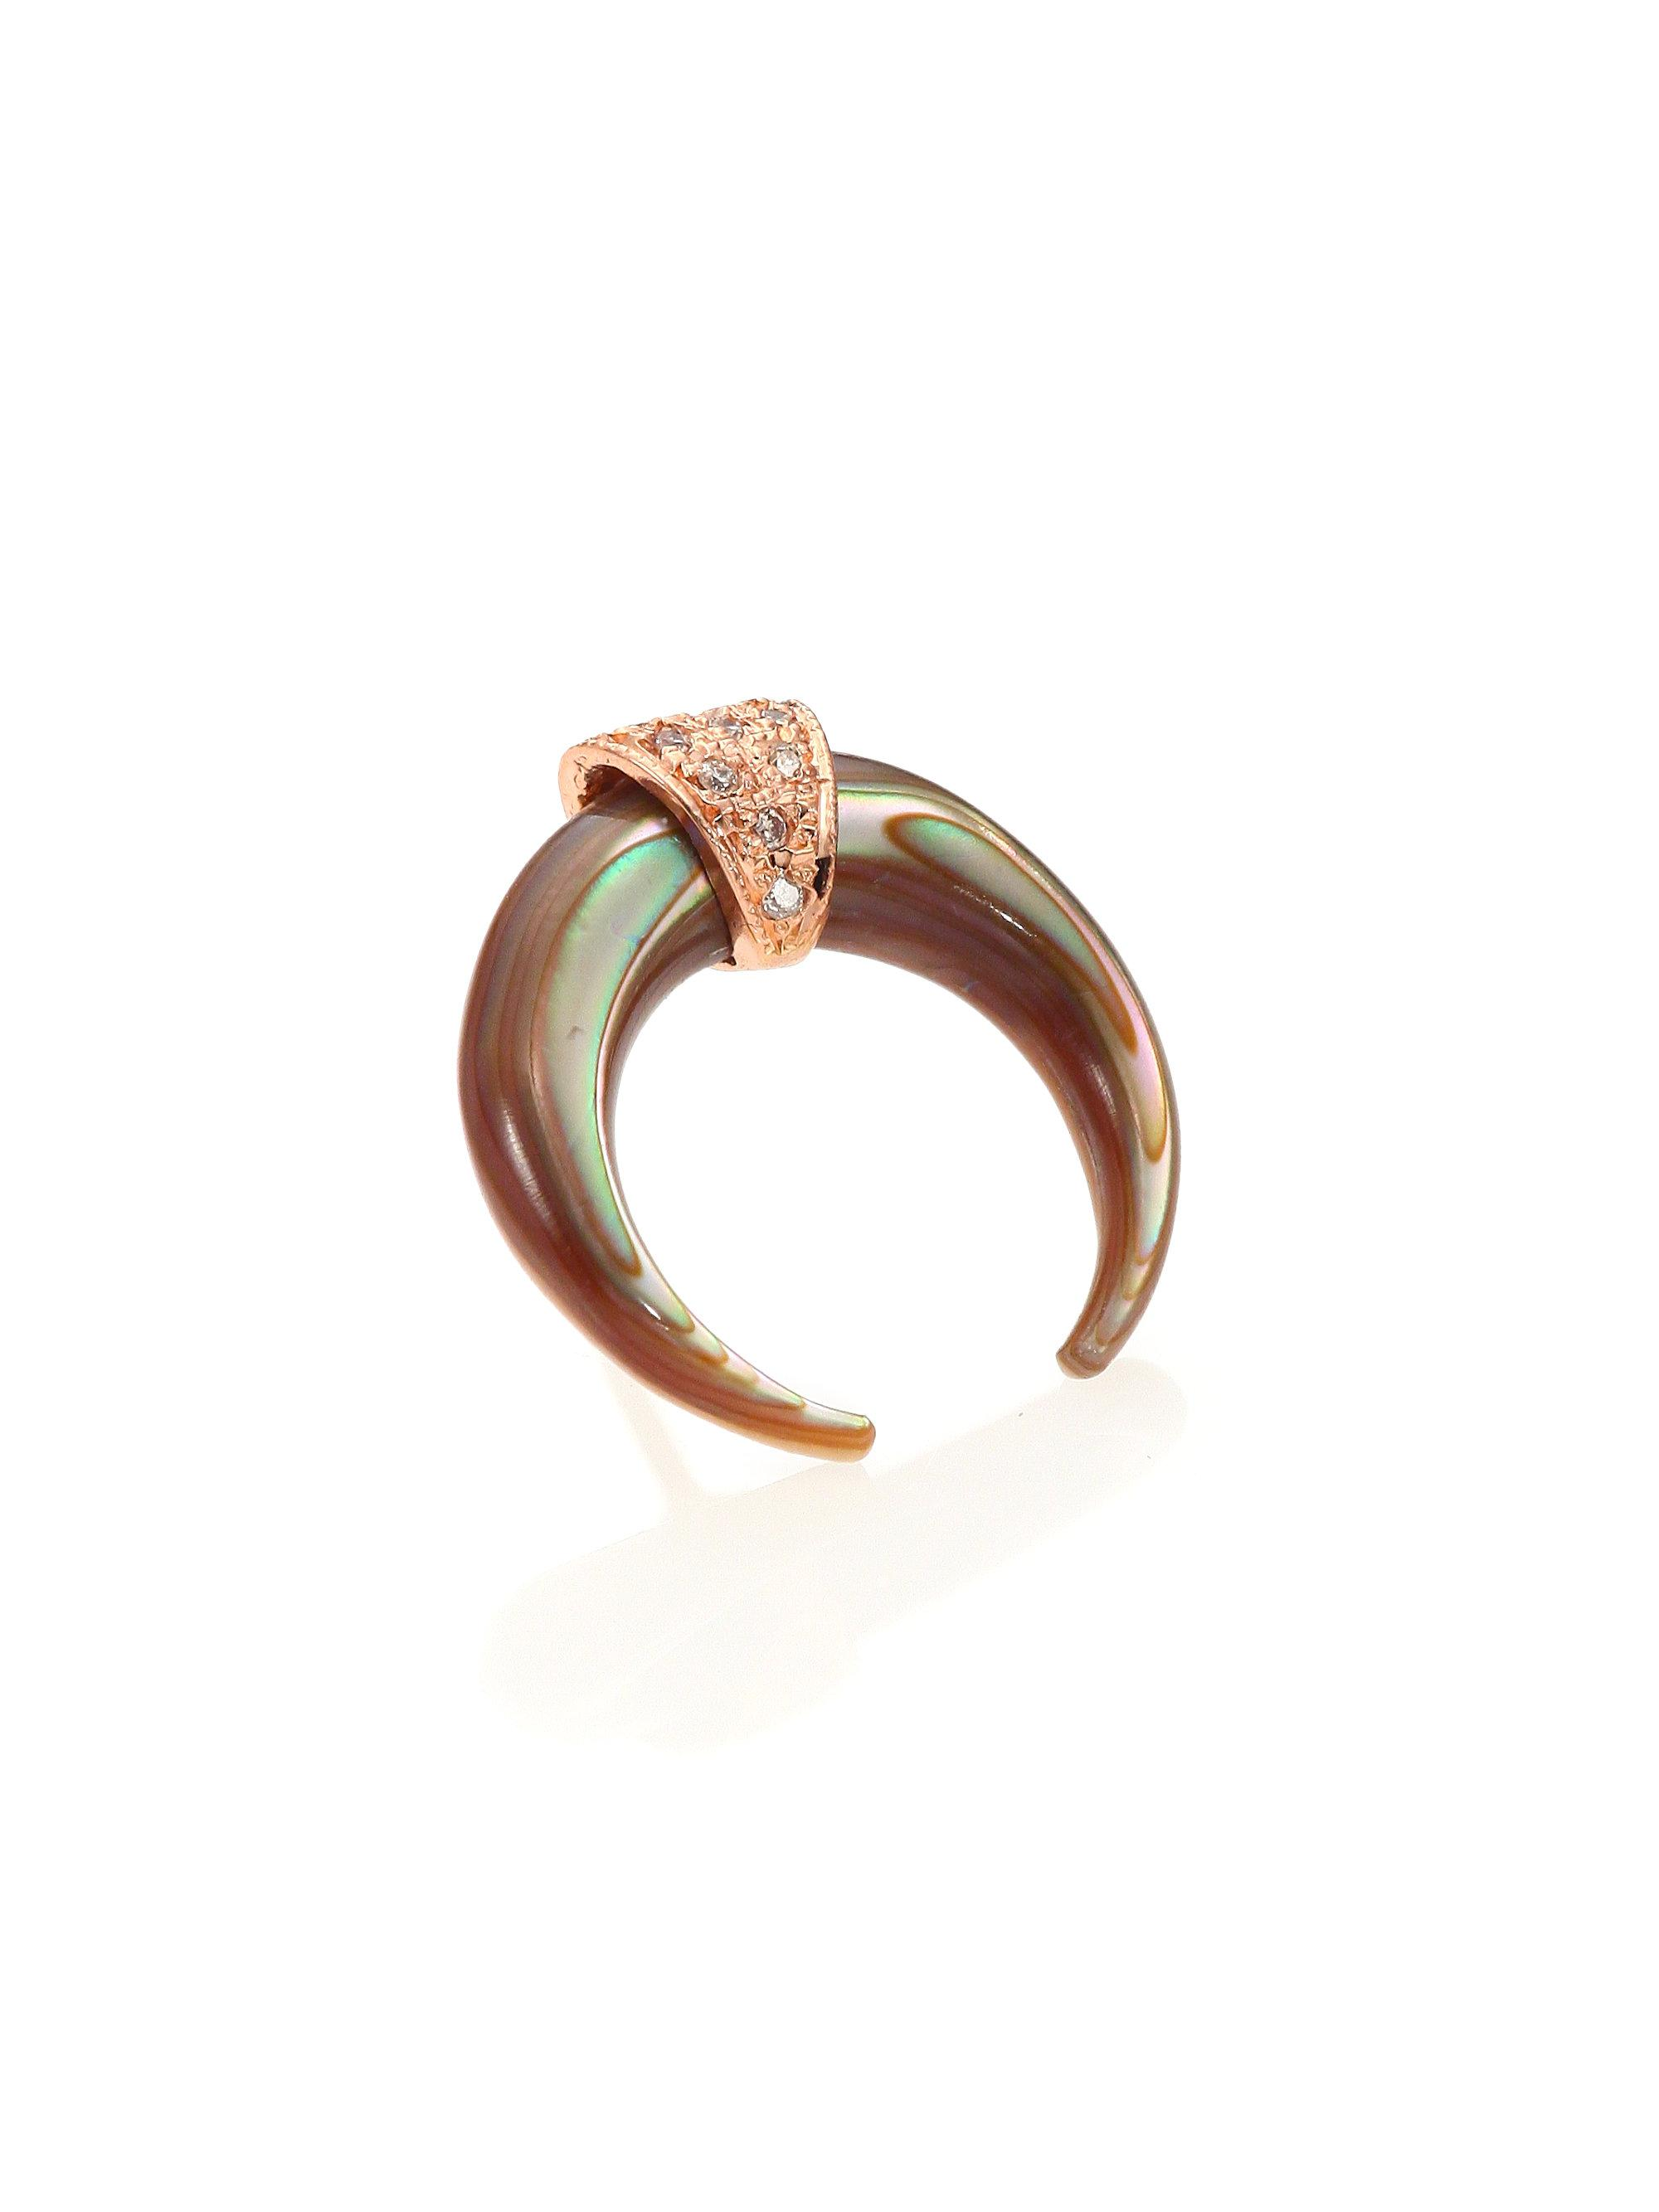 maya circle lagos com doublet ring rings abalone lagosjewelry pin engagement